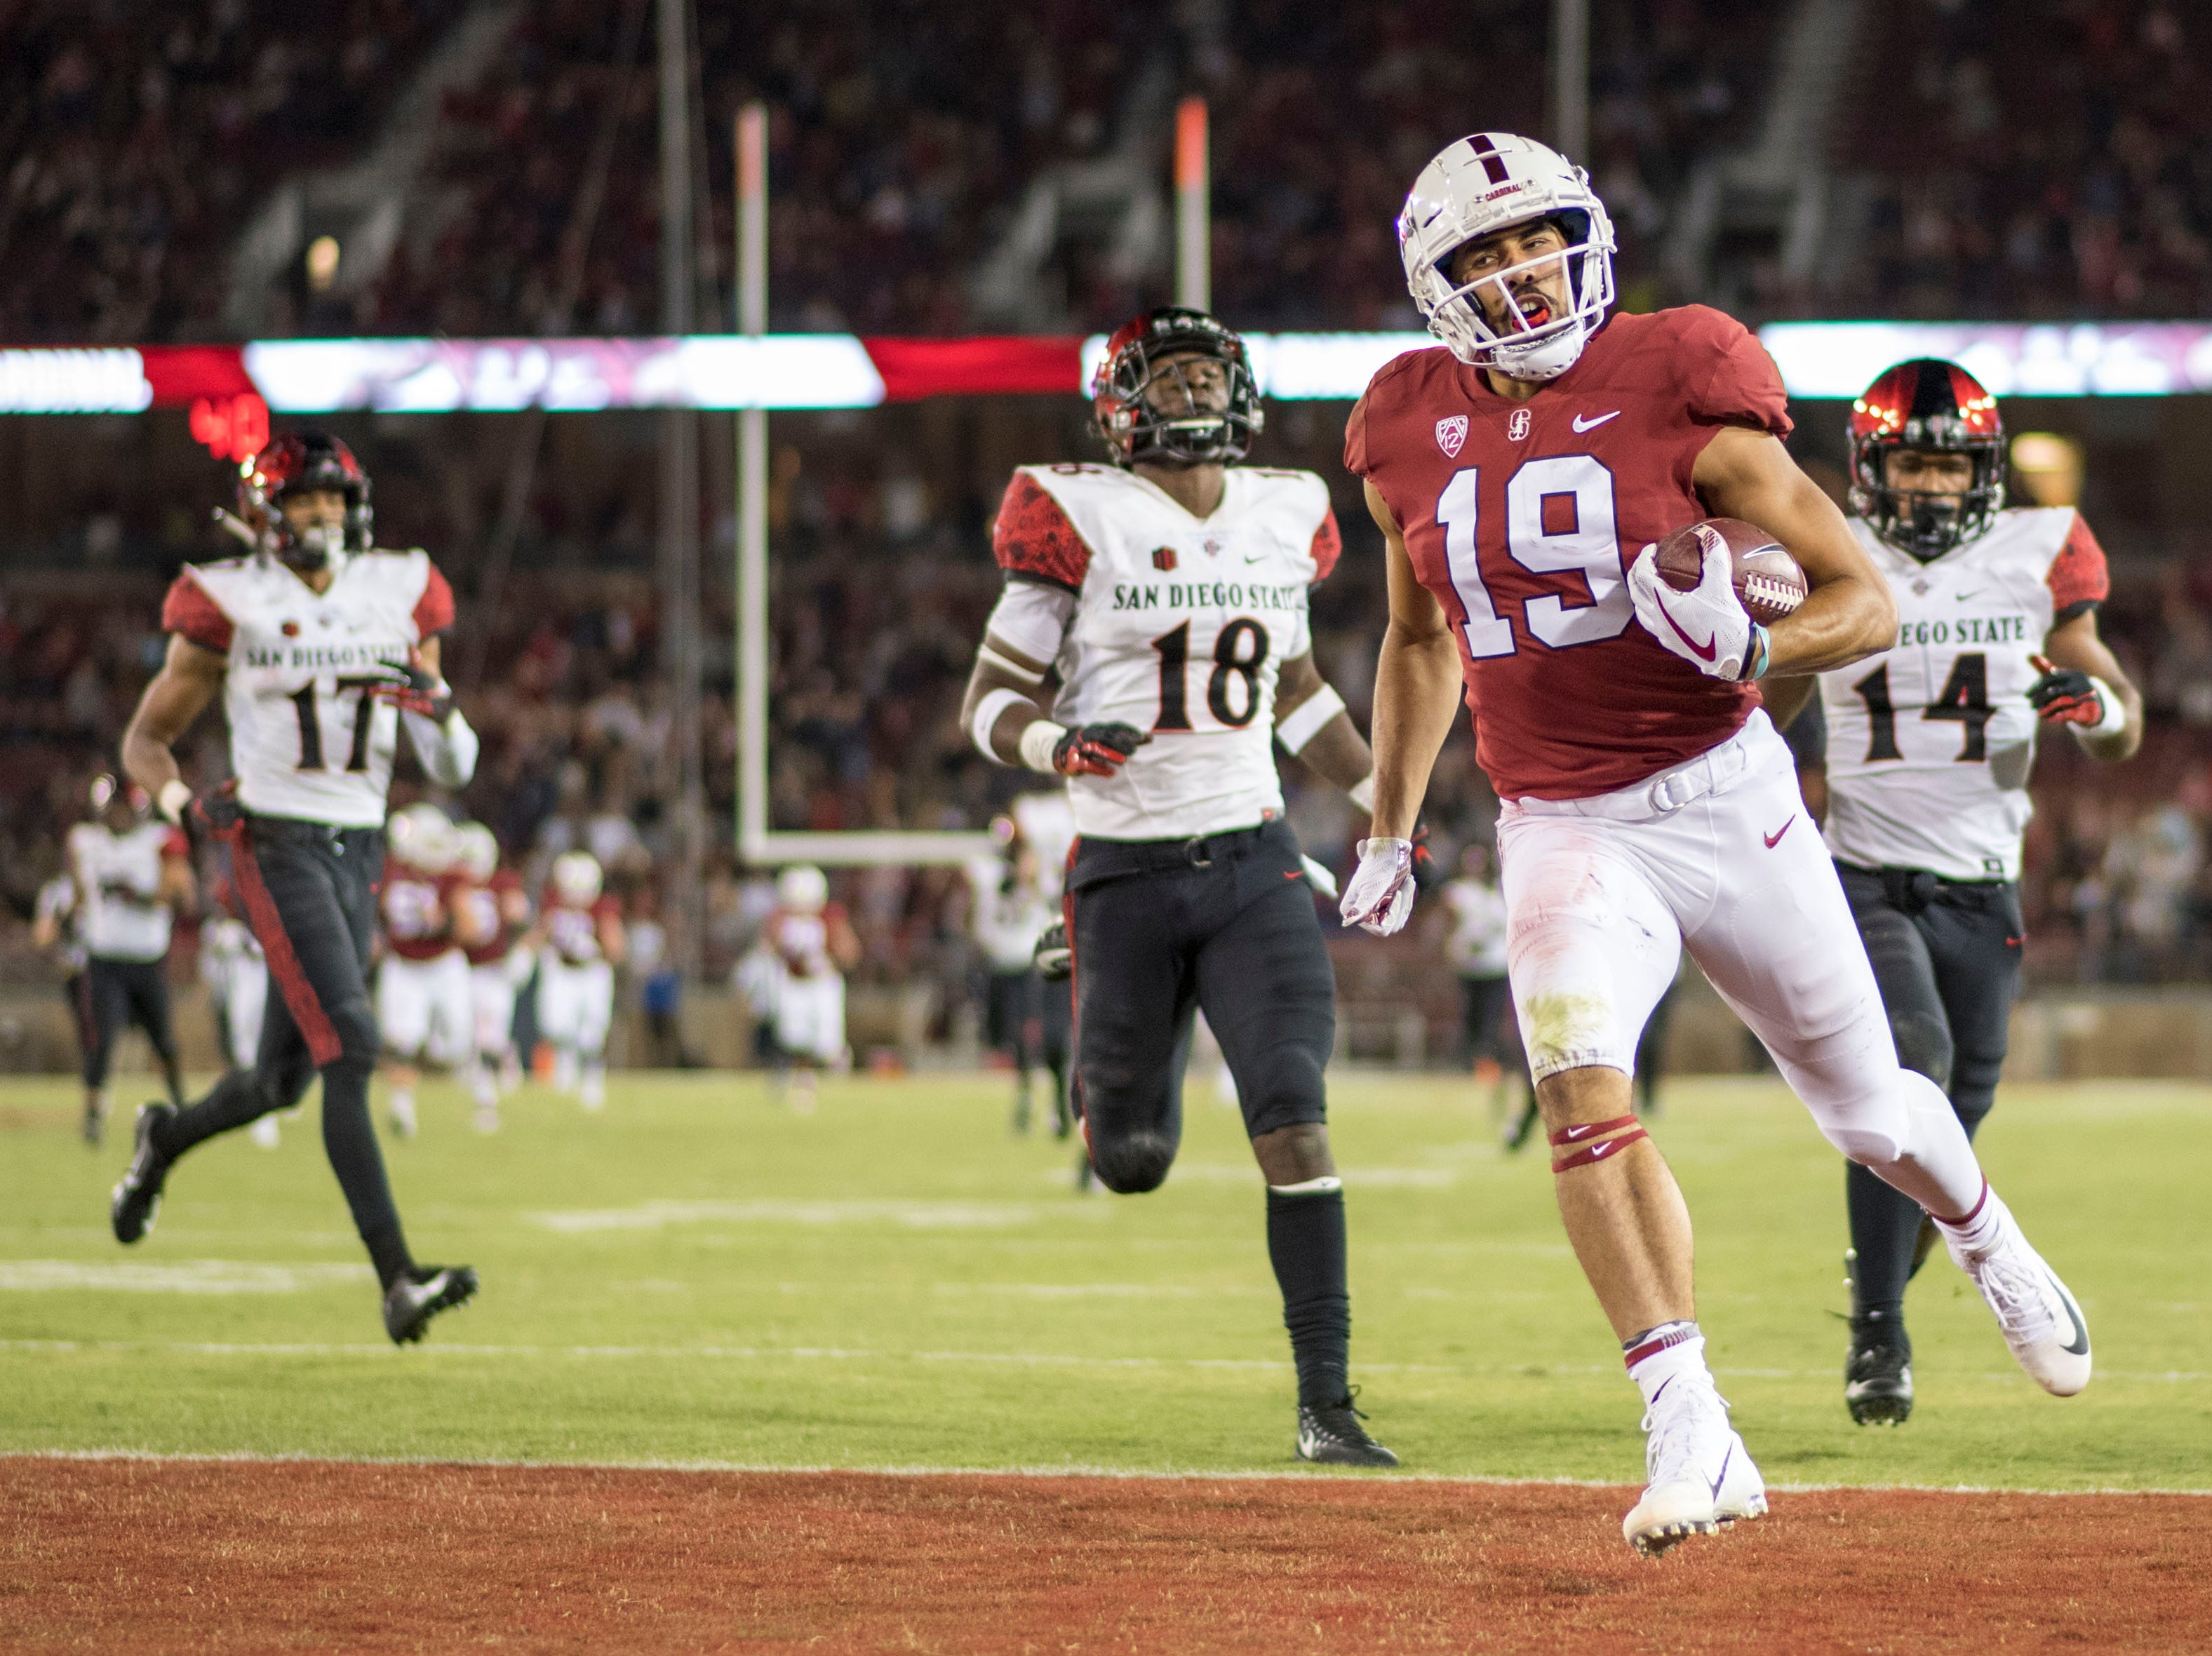 Stanford Cardinal wide receiver JJ Arcega-Whiteside (19) scores a touchdown against the San Diego State Aztecs during the third quarter at Stanford Stadium.